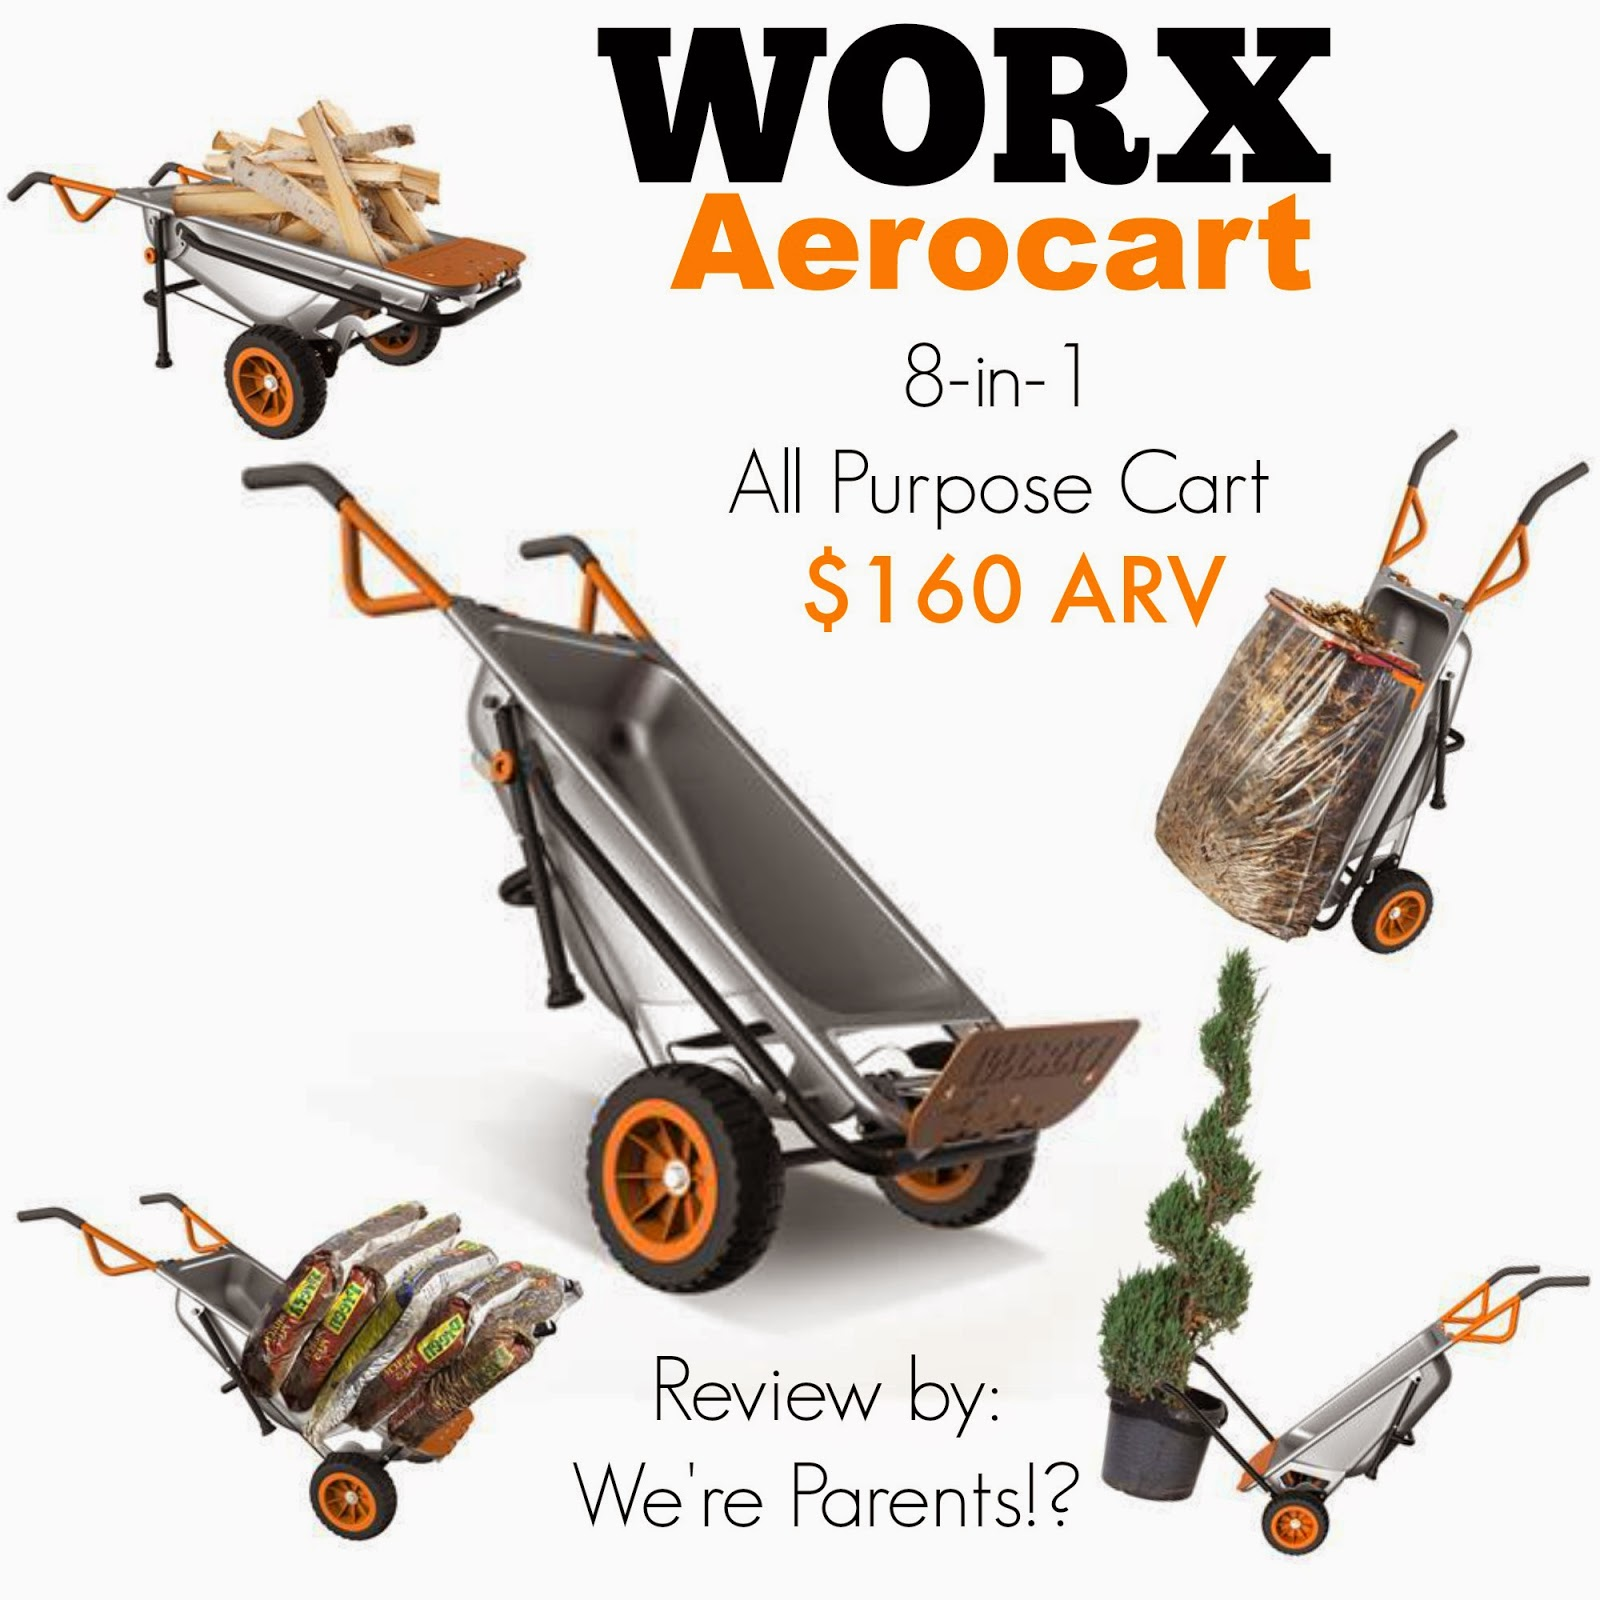 WORX Aerocart 8-in-1 Ultimate Cart Giveaway